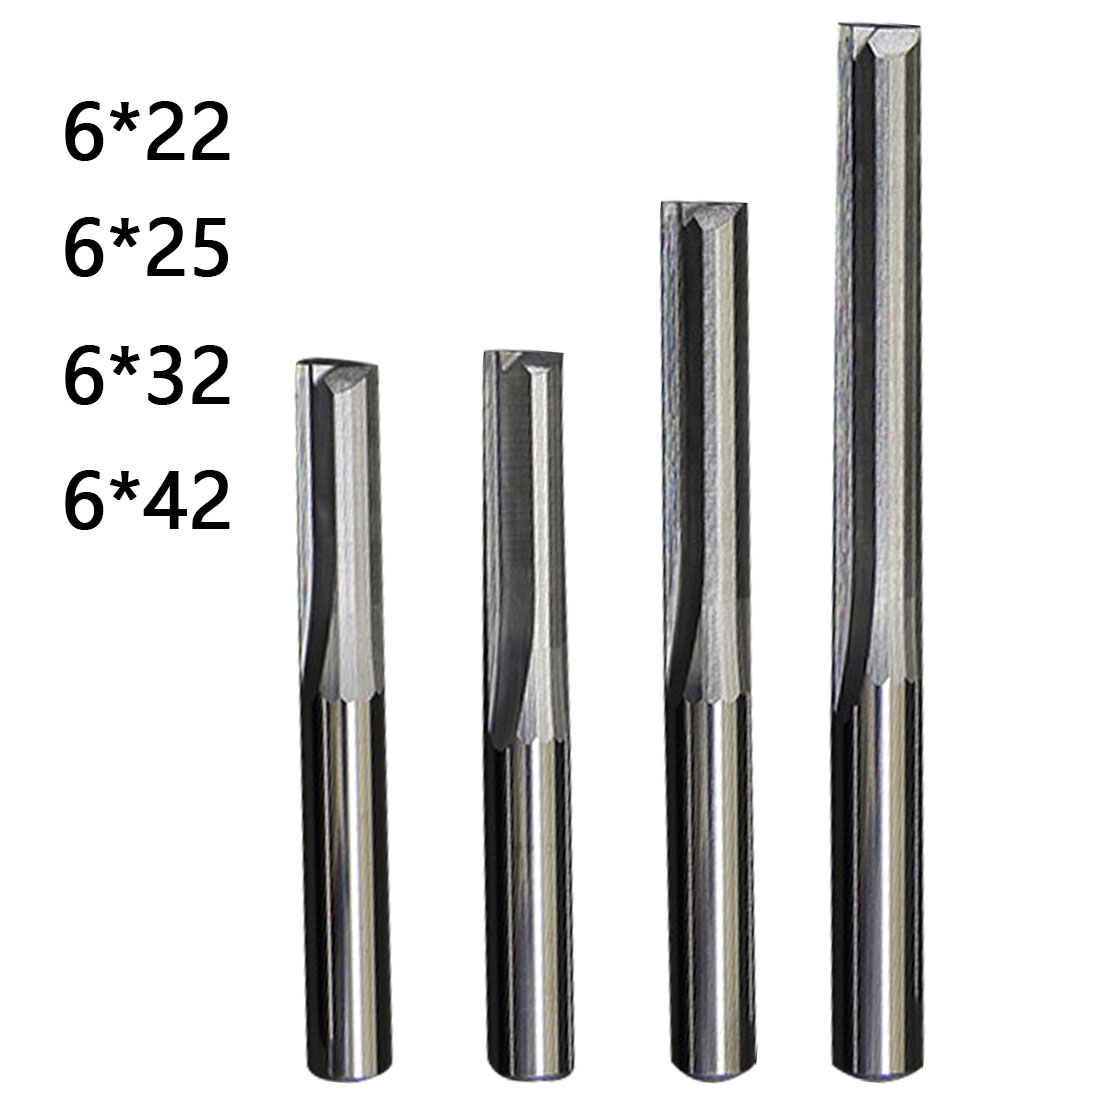 Milling Cutter 1pc 6mm/4mm Shank Two Flutes Straight Router Bits for Wood CNC Straight Engraving Cutters End Mill Tools free shipping 3pcs 6mm hrc55 d6 15 d6 50 four flutes roughing end mills milling tools carbide cnc router bits